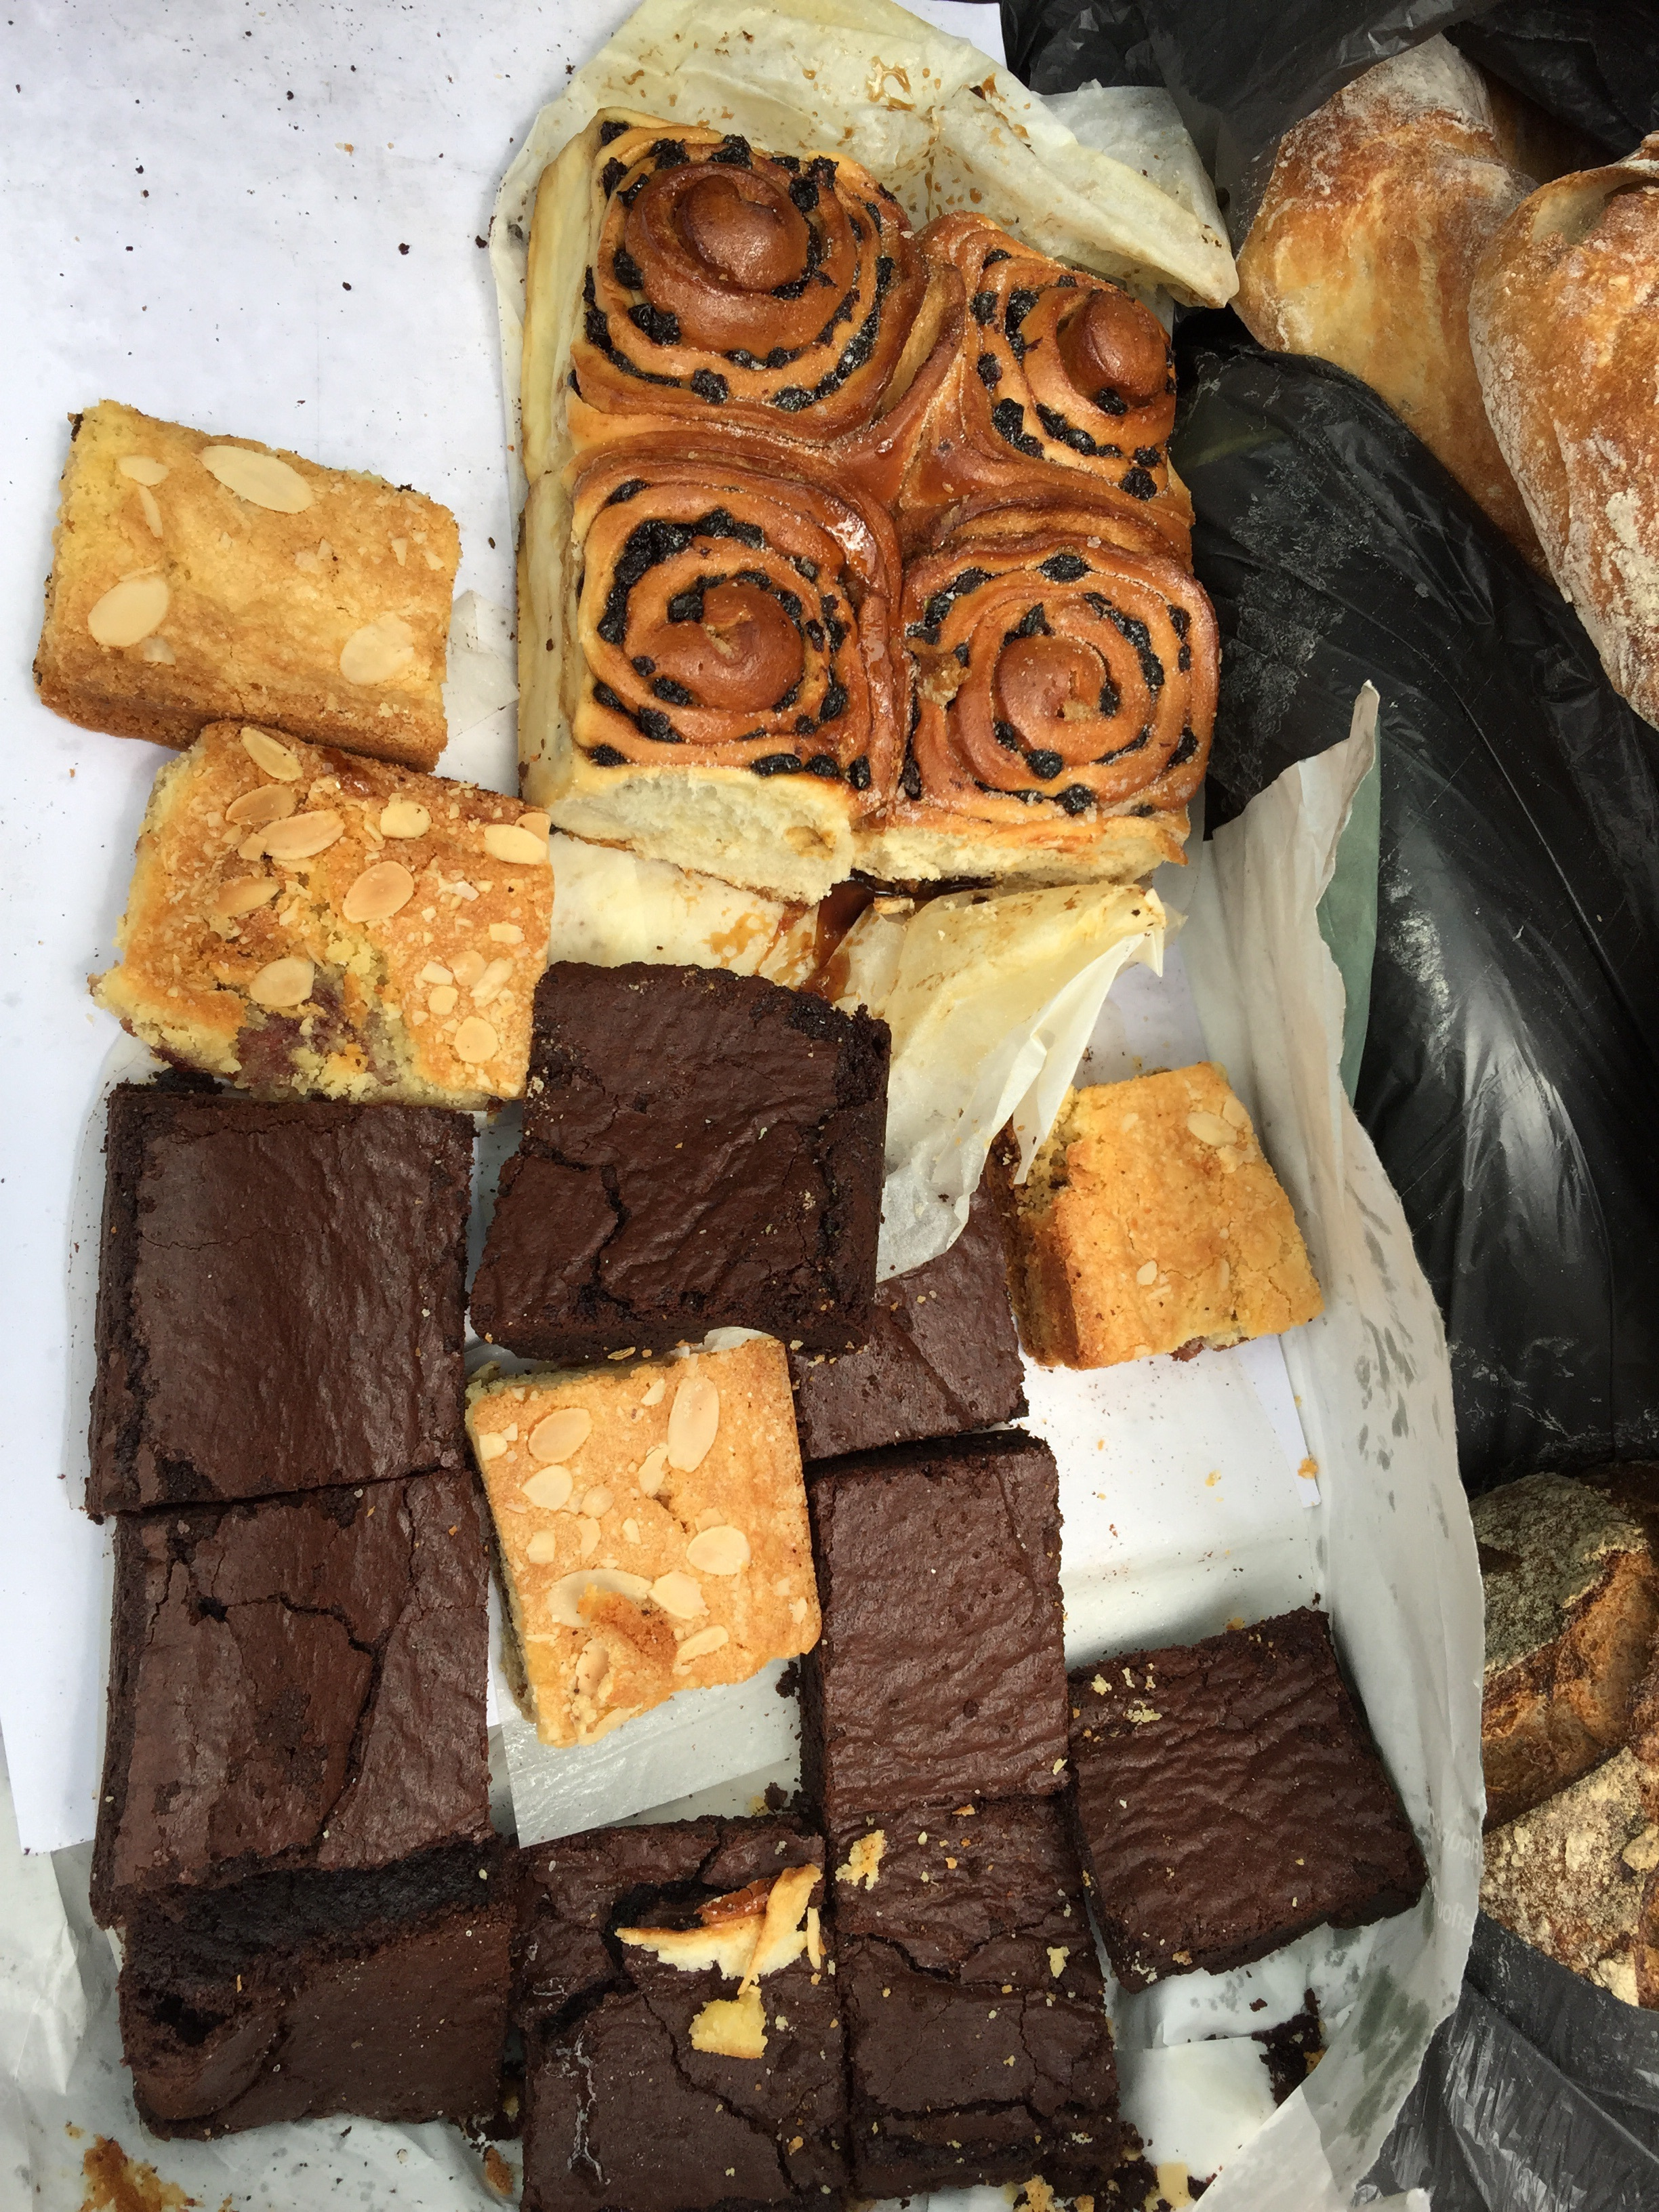 Fresh scones, chocolate brownies, and other tasty treats